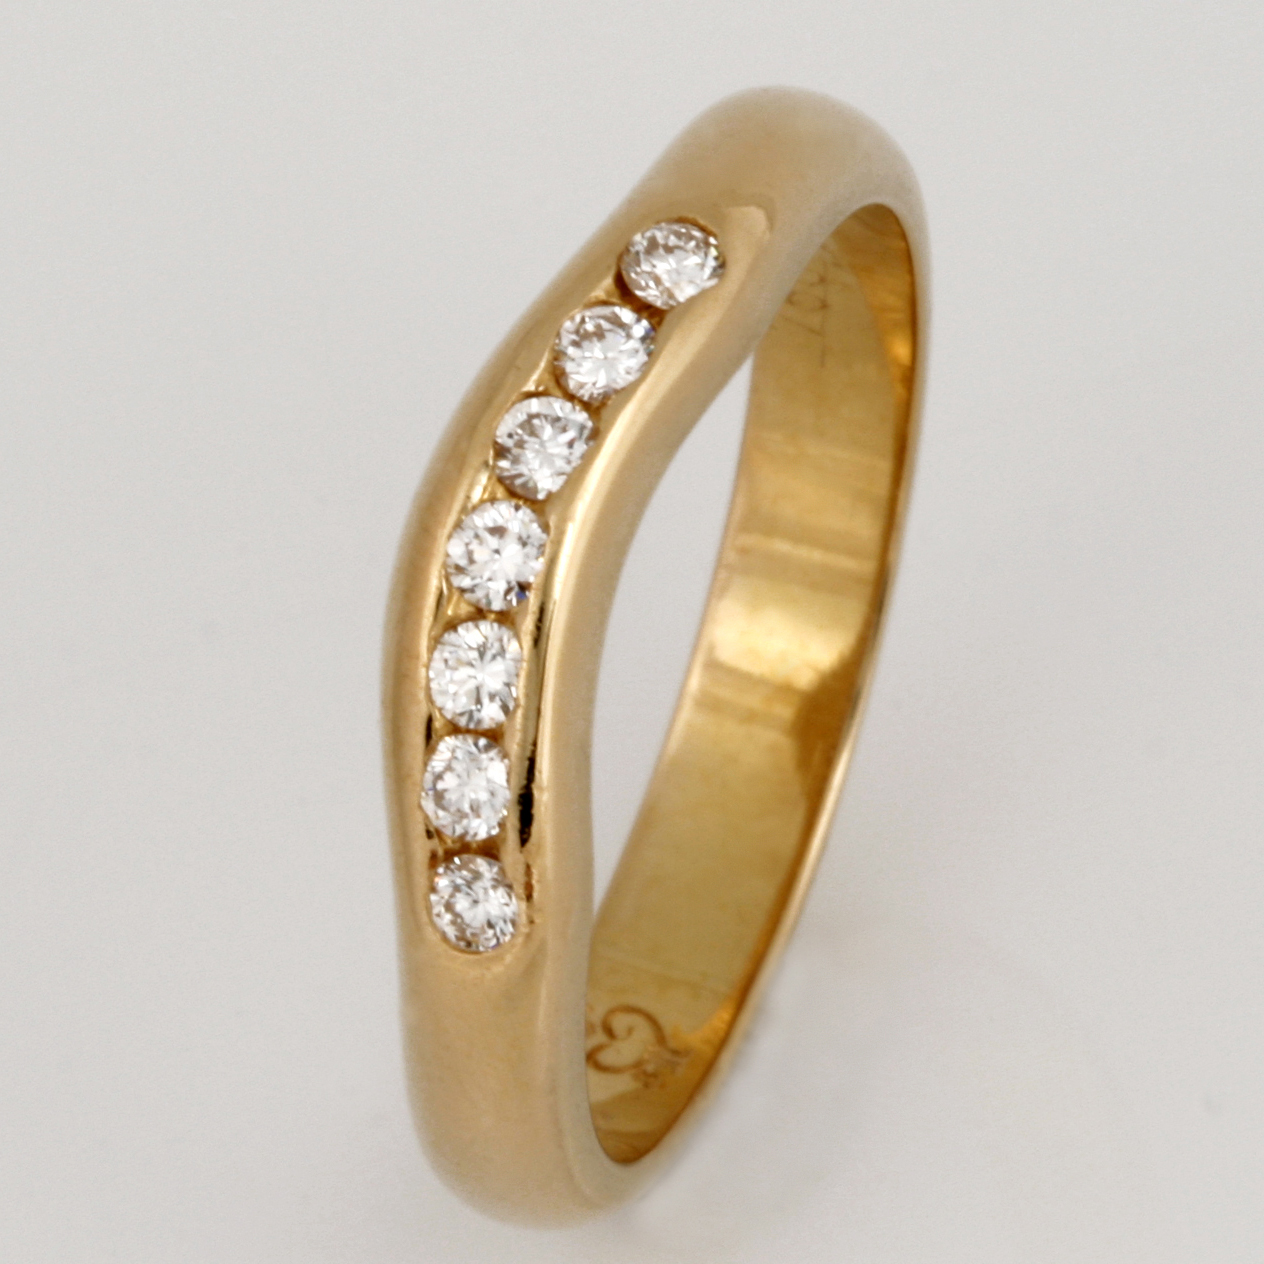 Handmade ladies 18ct yellow gold diamond set ring